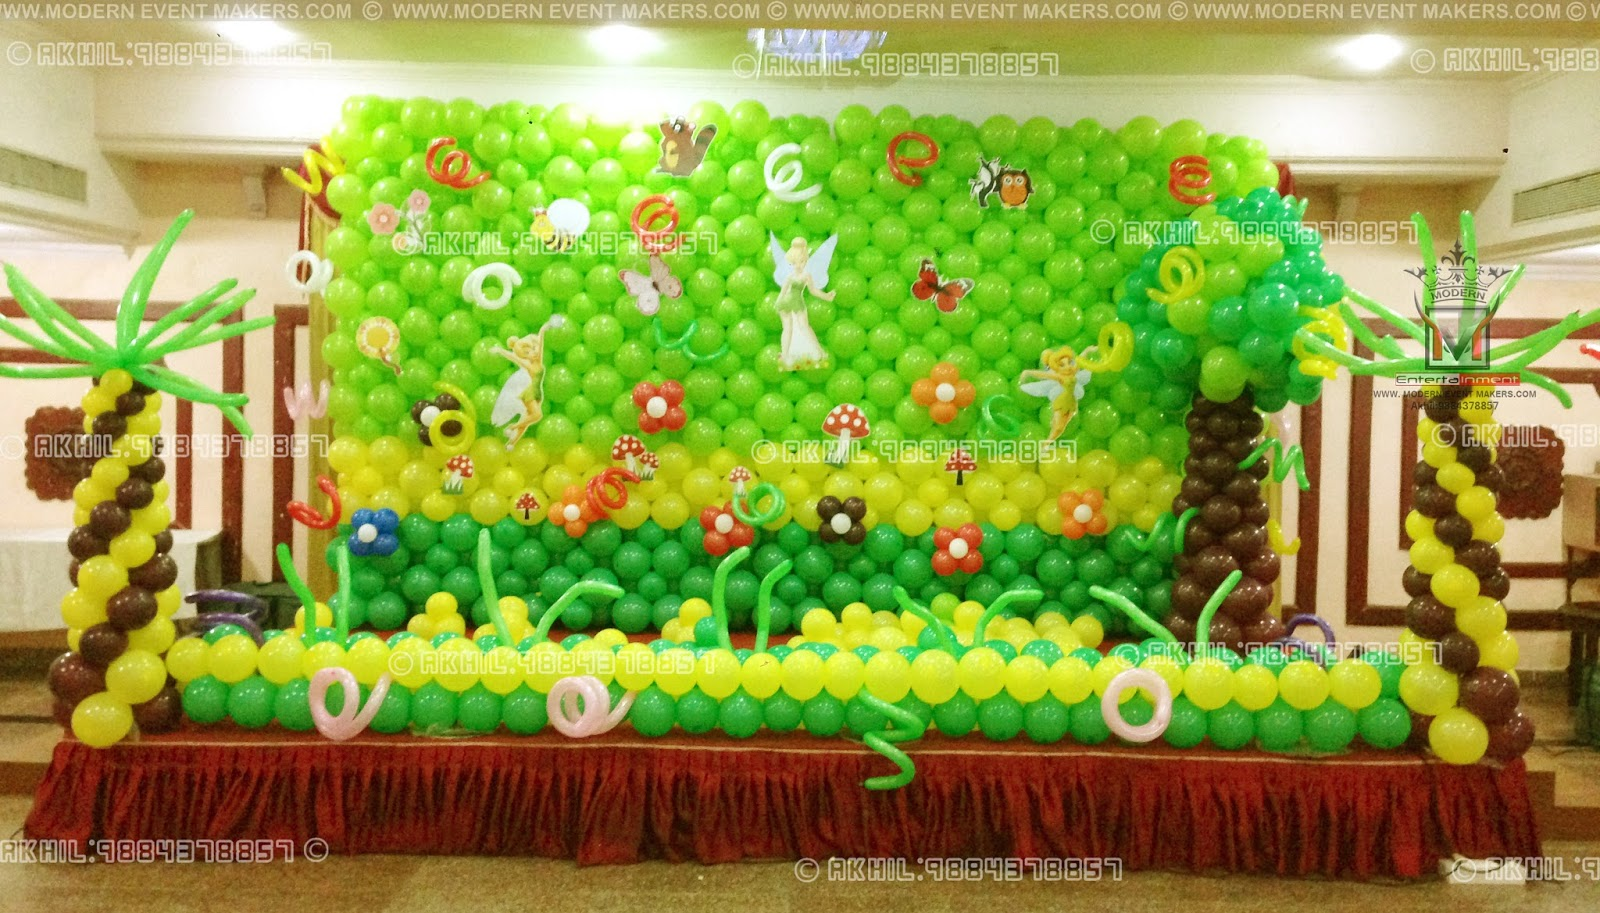 Event management company balloon decoration modern for Balloon birthday decoration